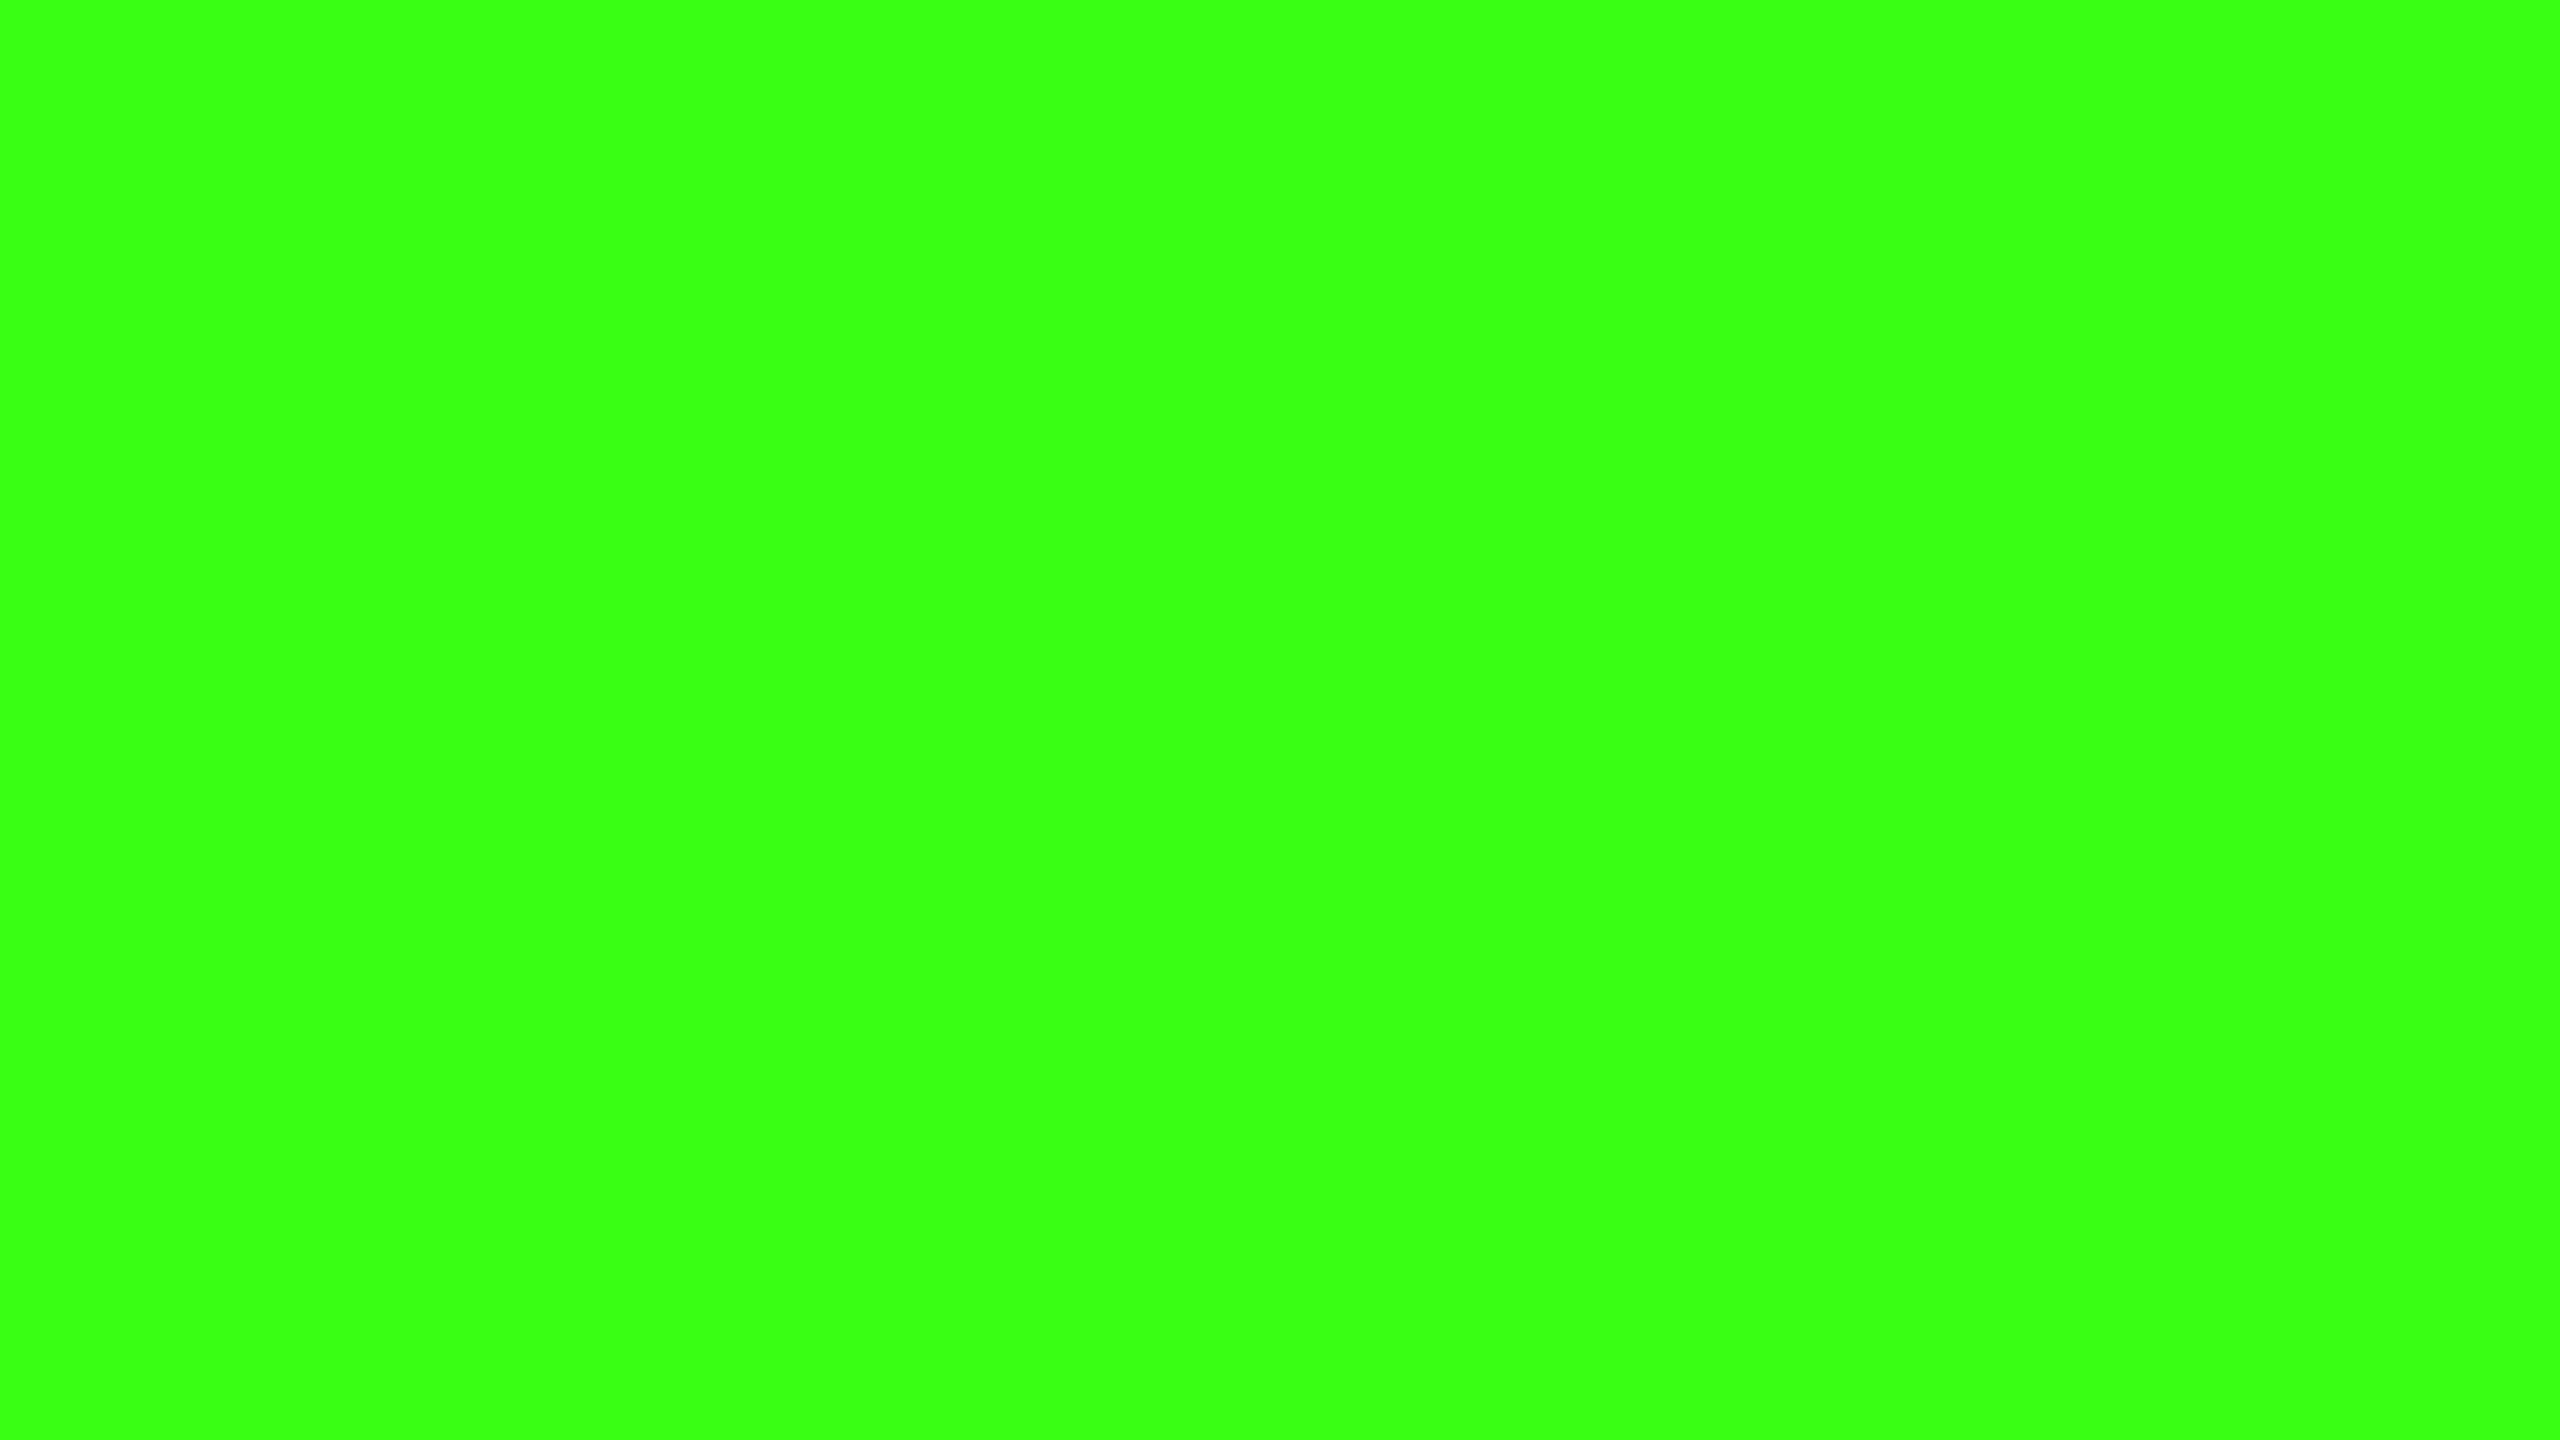 Green Background Wallpaper (65+ images)